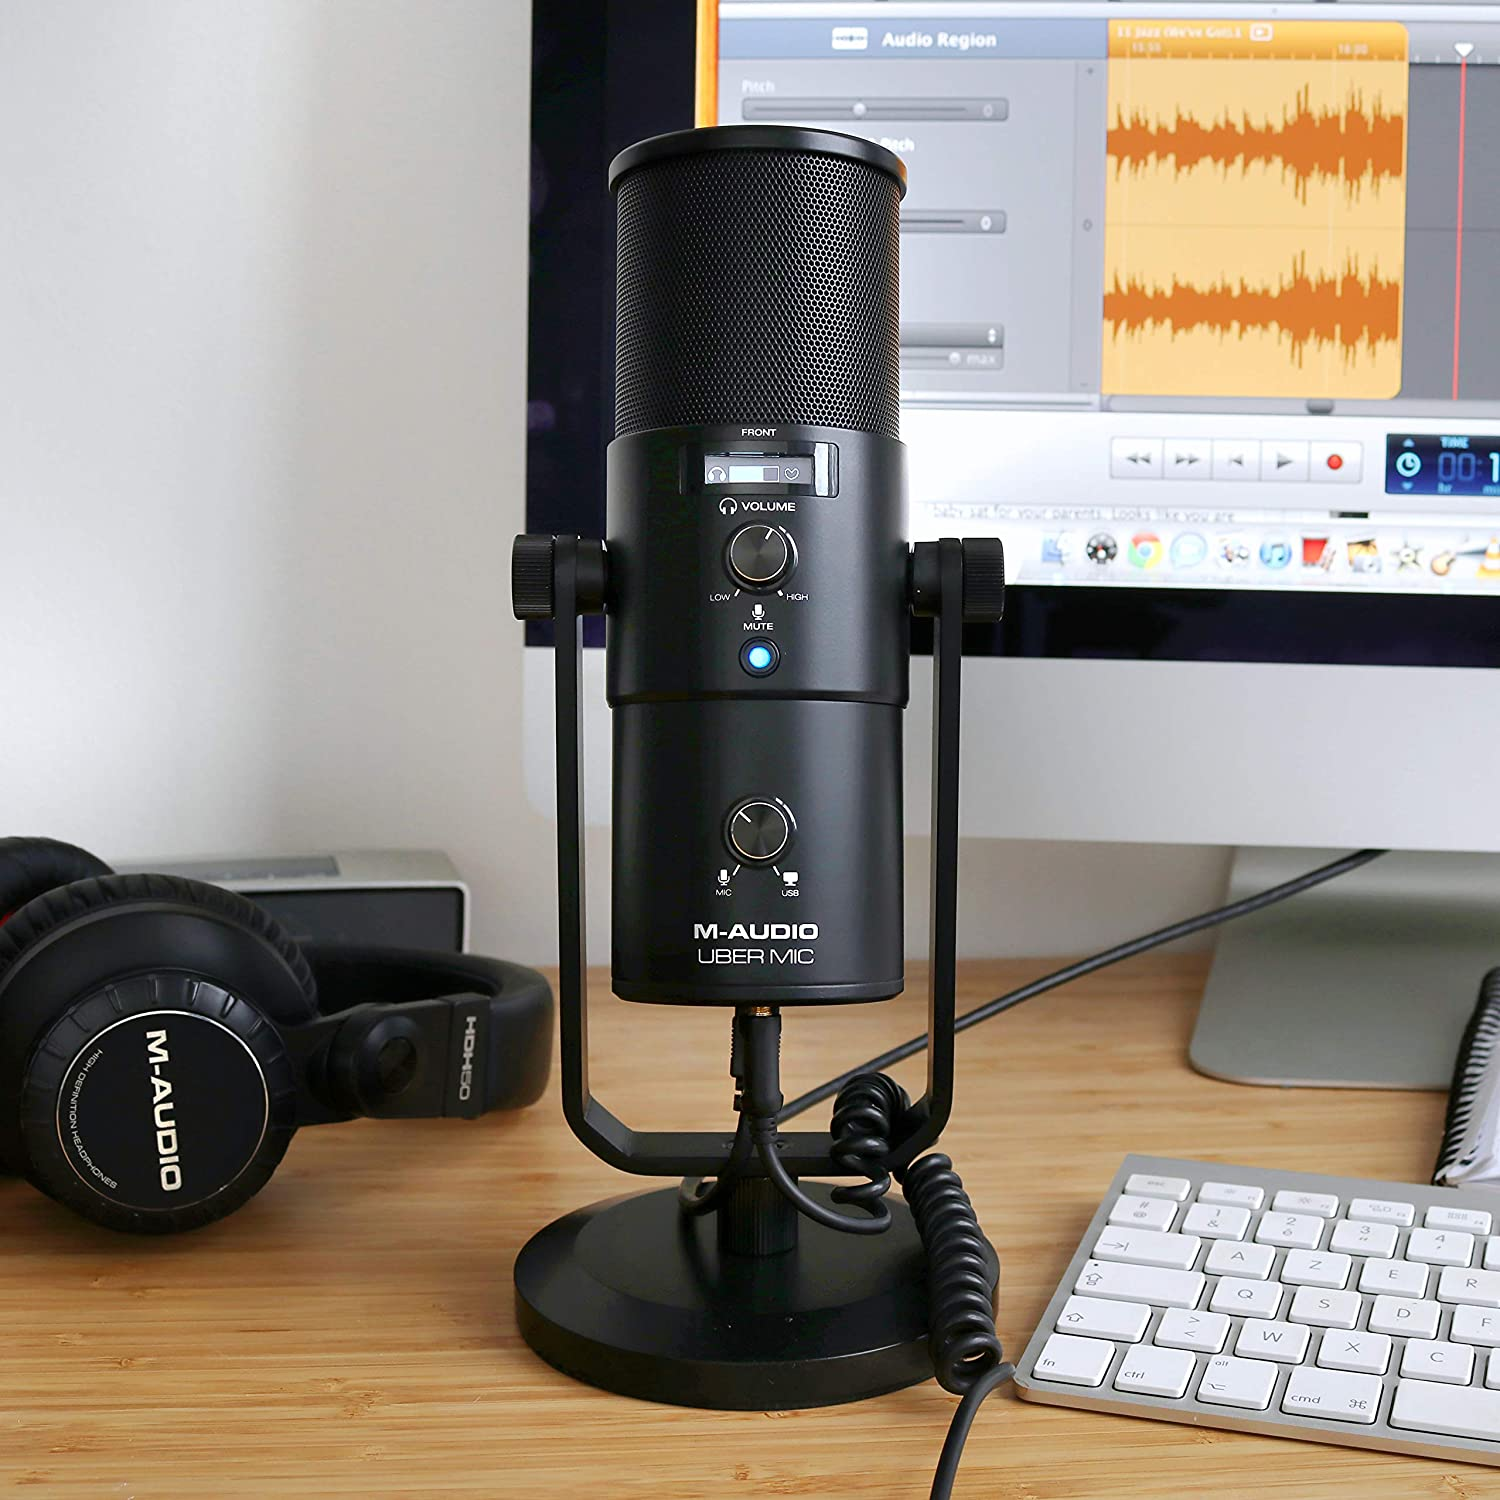 M-Audio Uber Mic USB Podcast Microphone with Headphone Output